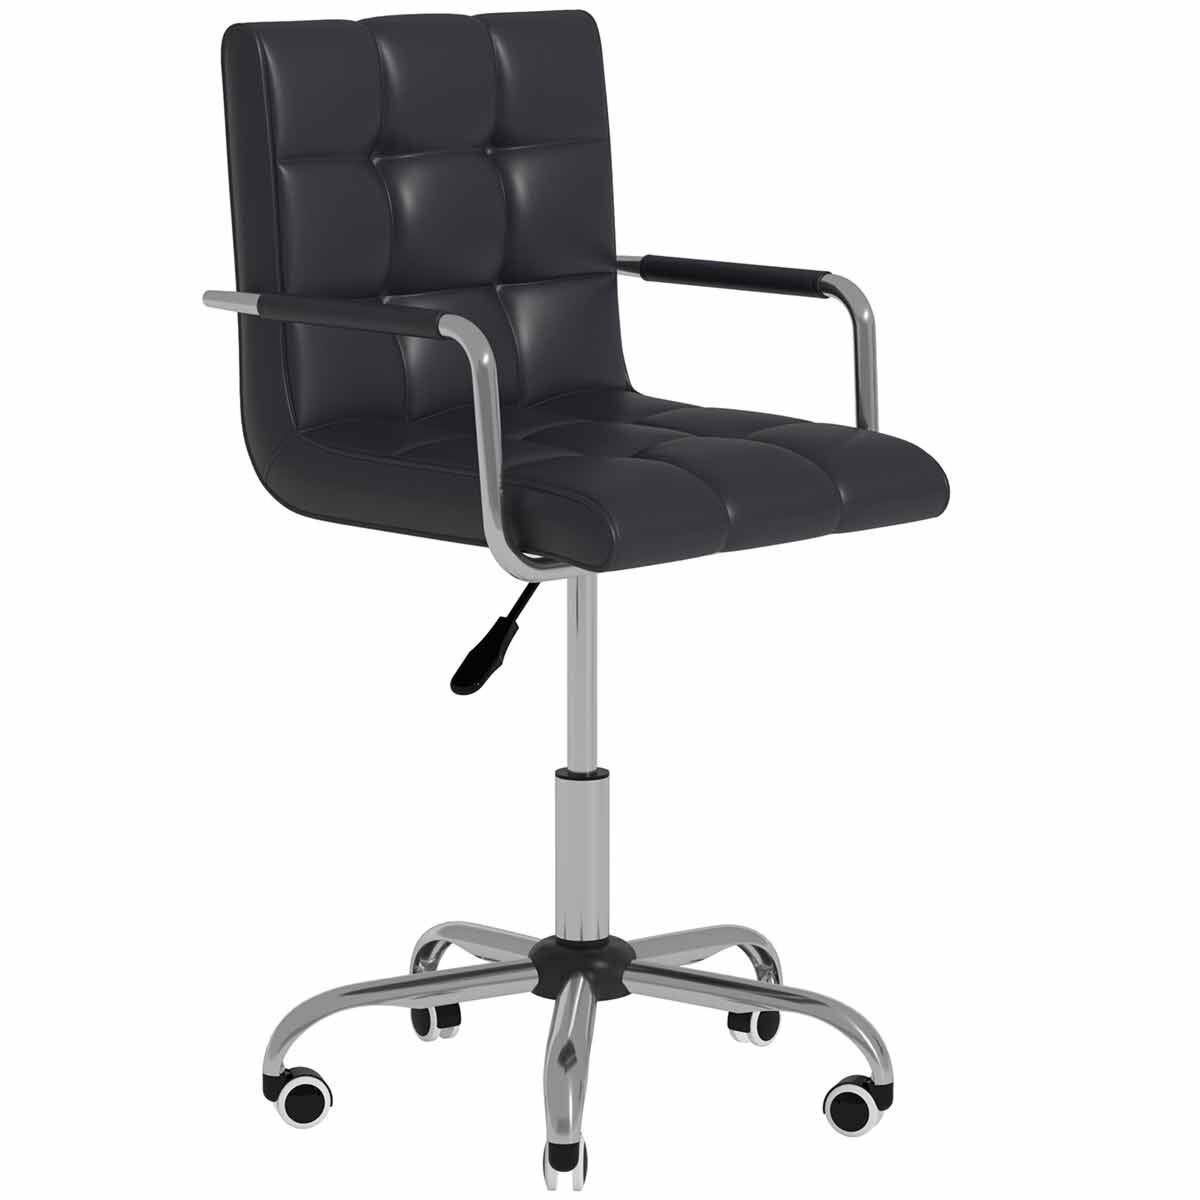 Allegra PU Leather Adjustable Swivel Office Chair Black